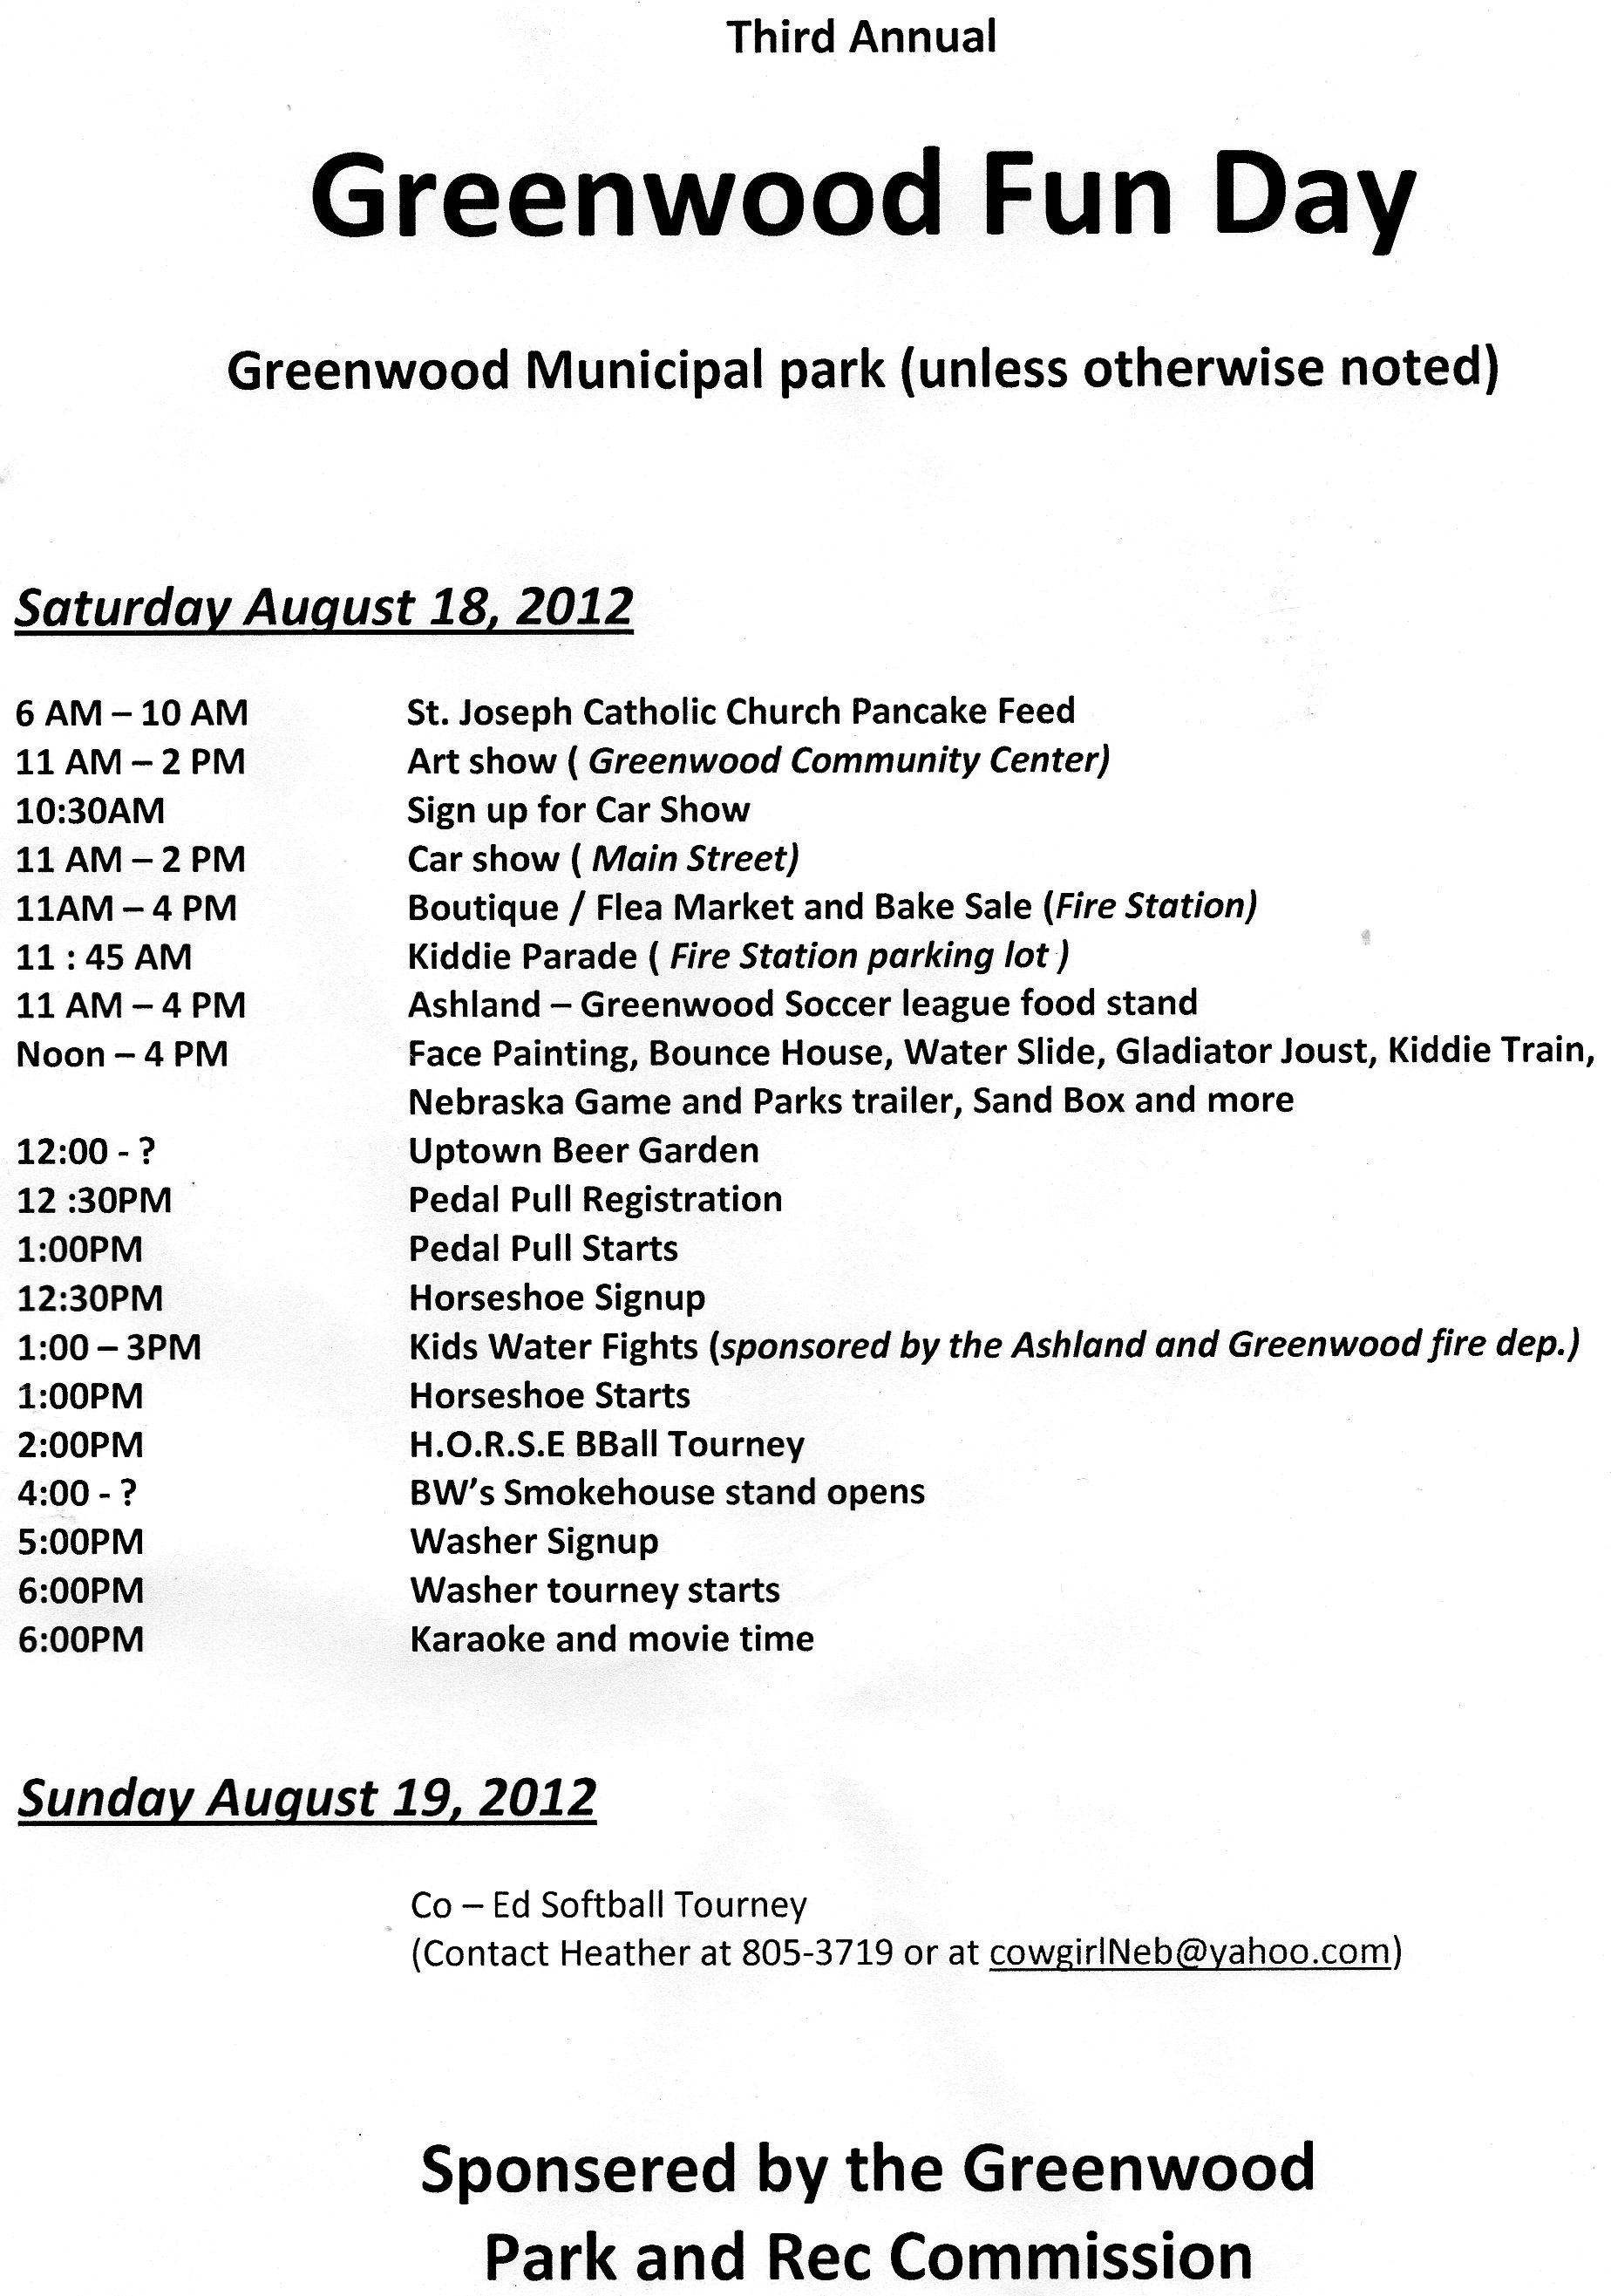 greenwood fun_day